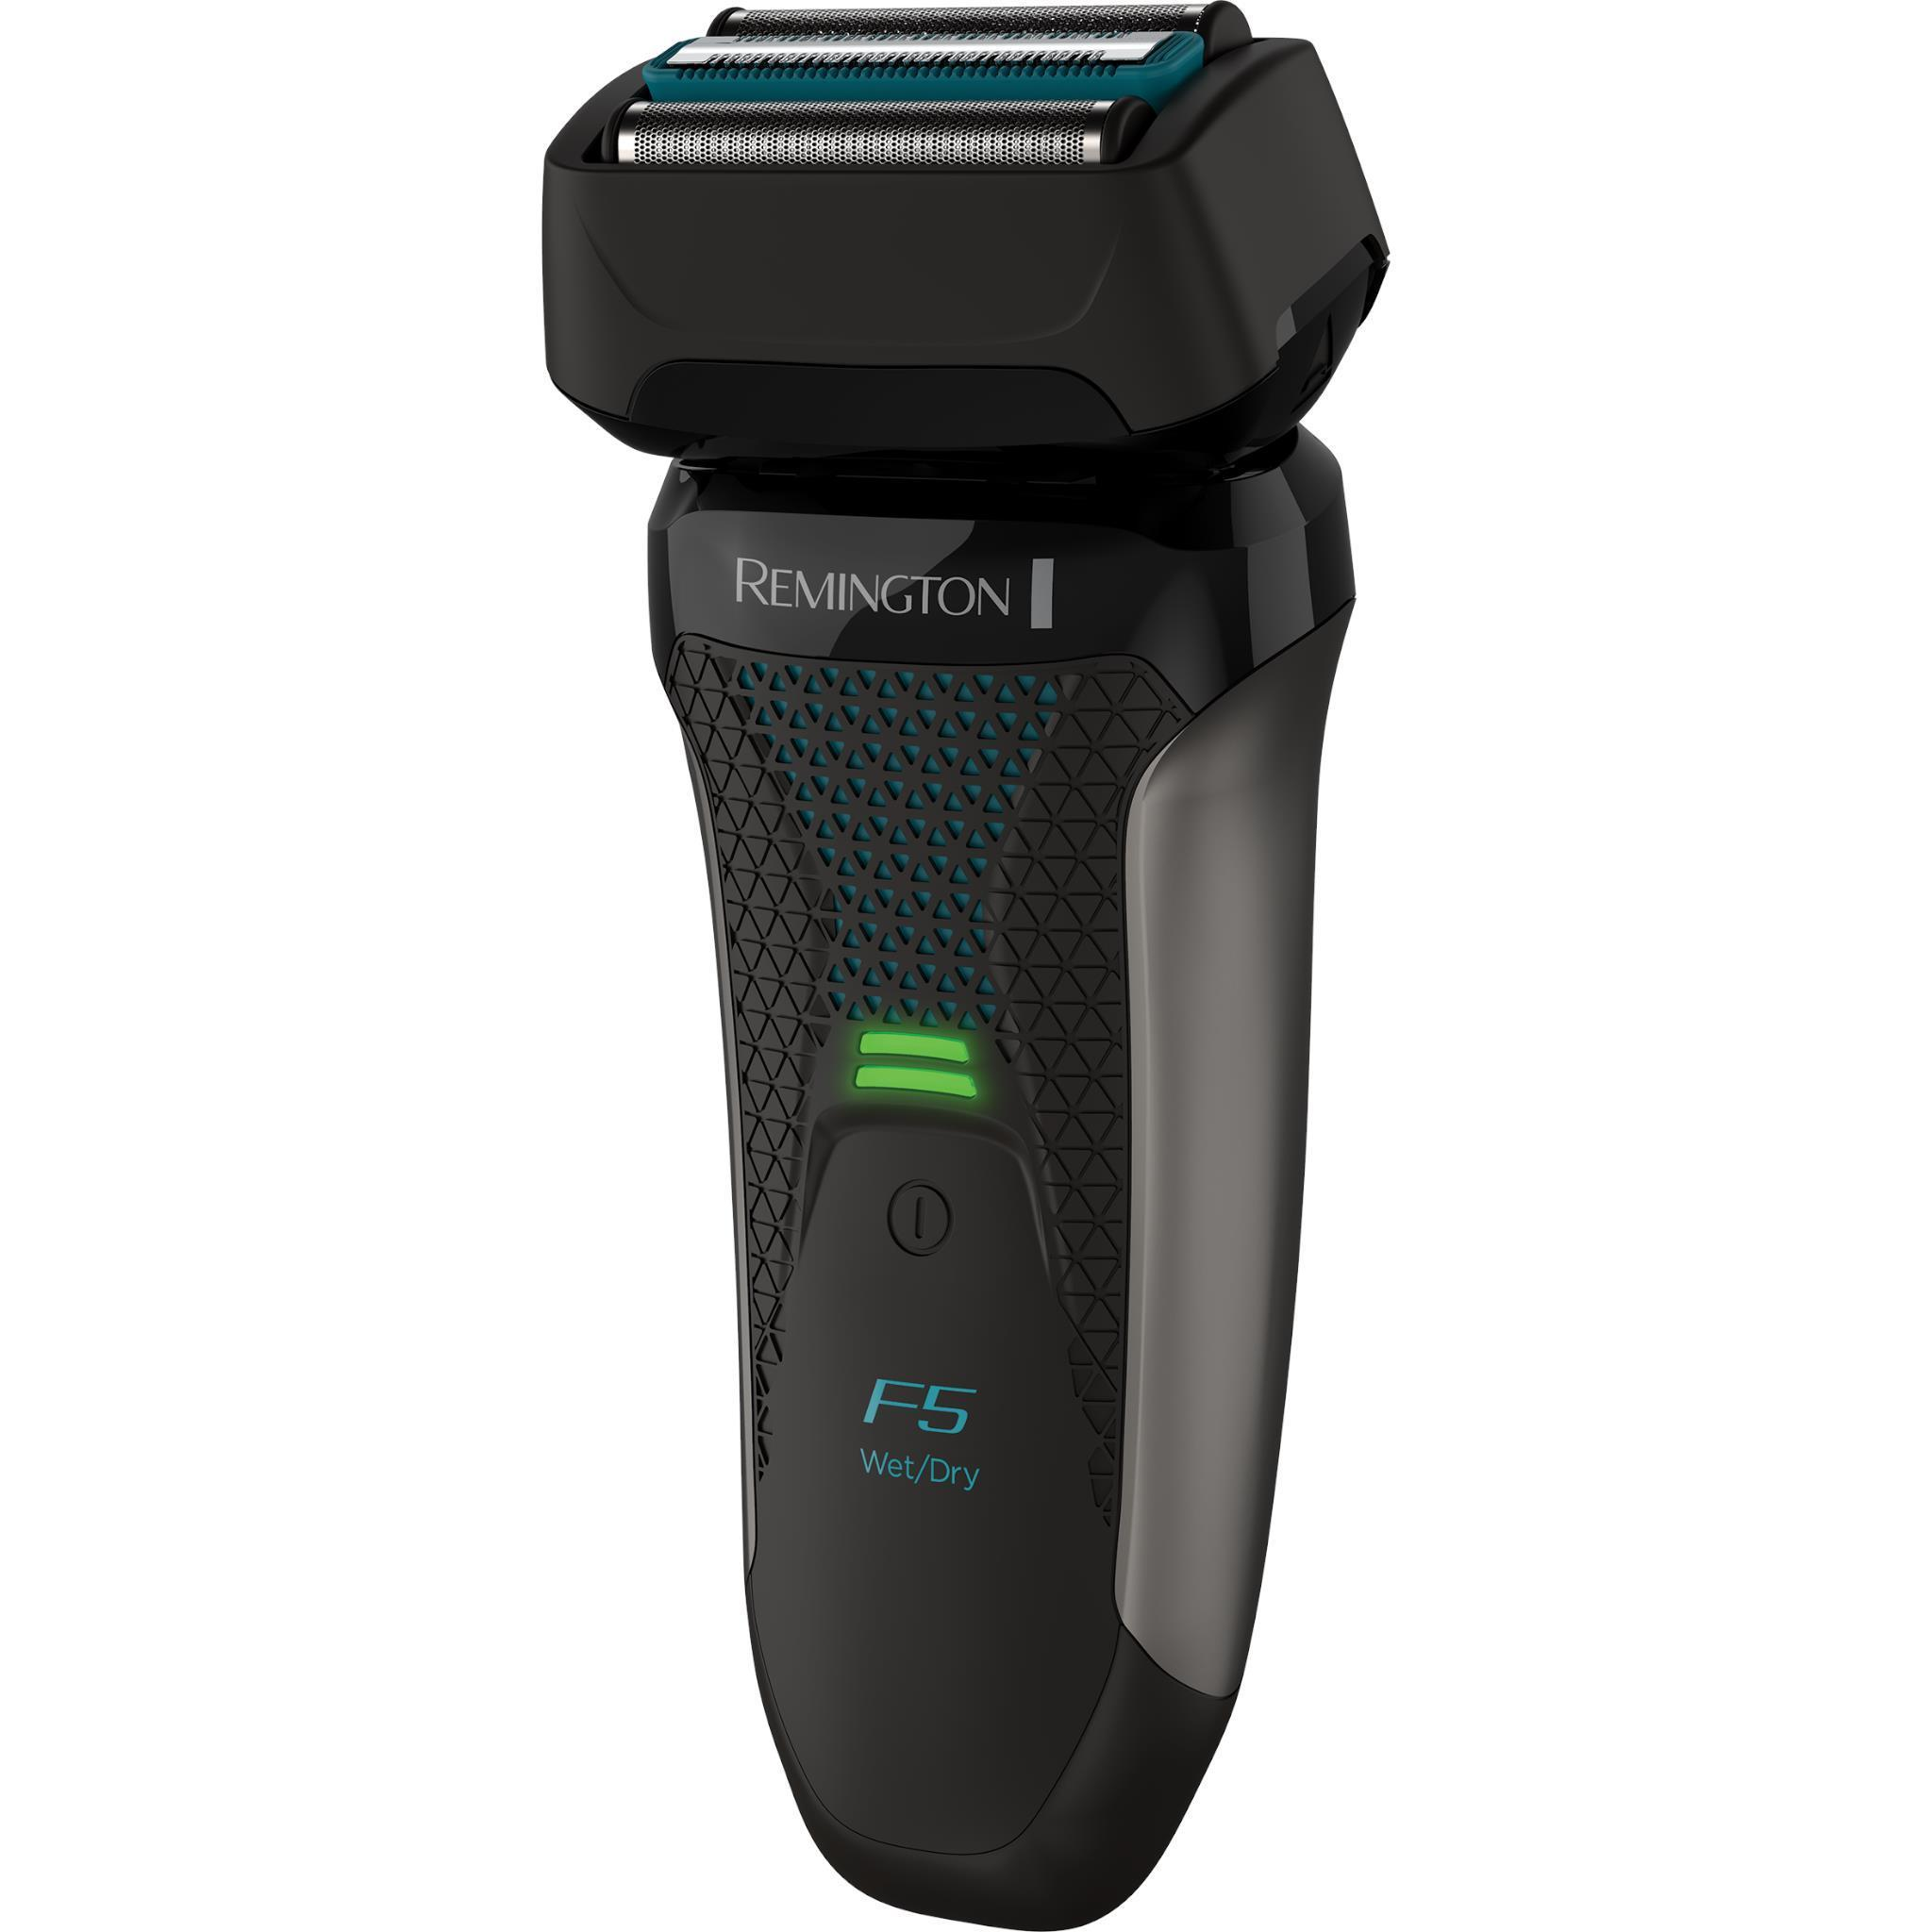 Remington Style Series F5 Foil Shaver